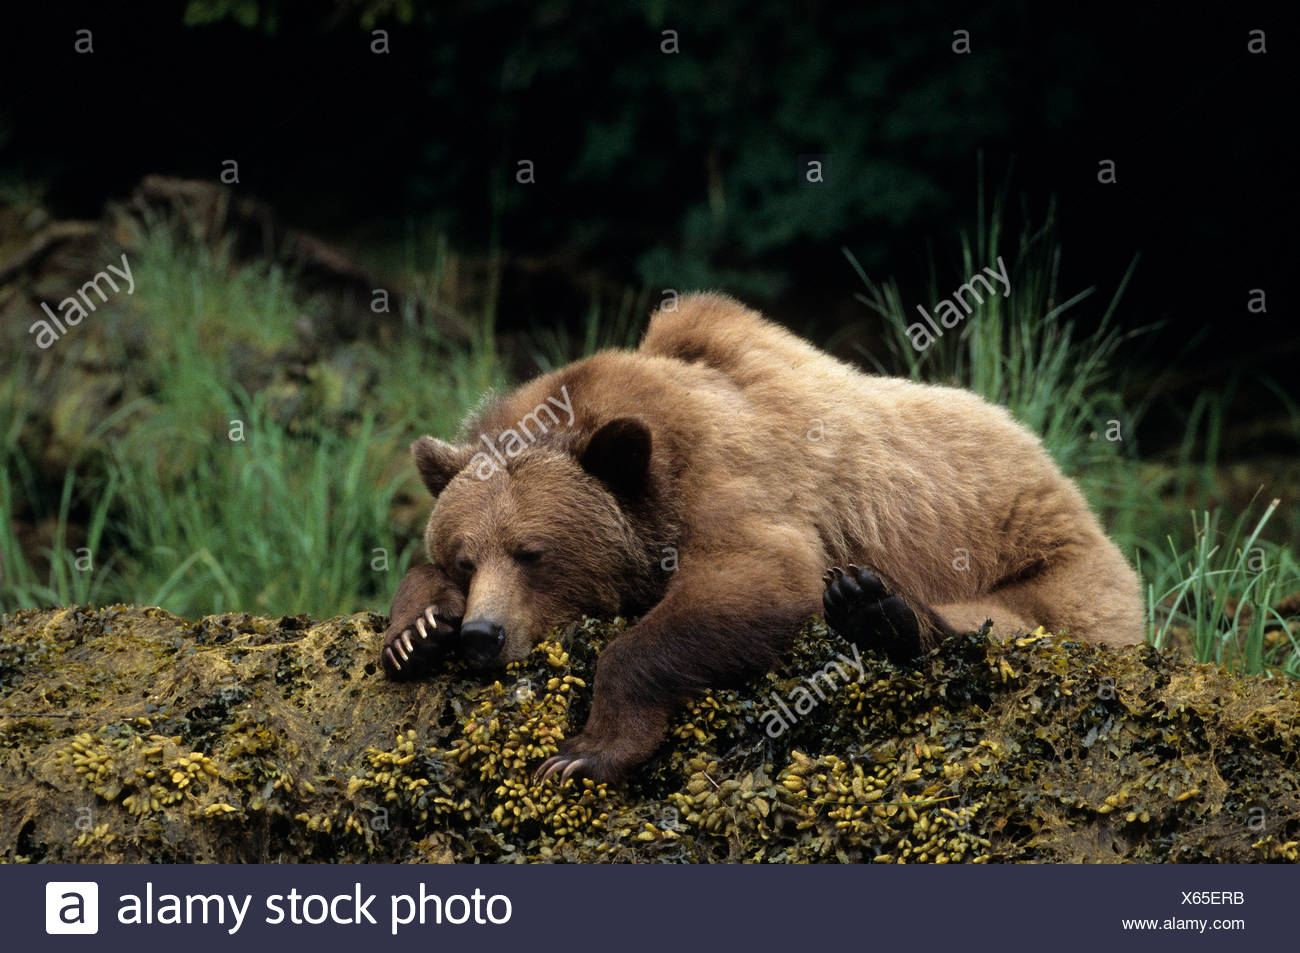 Female Grizzly bear (Ursus arctos horribilis) resting, Khutzeymateen Grizzly Bear Sanctuary, British Columbia, Canada - Stock Image